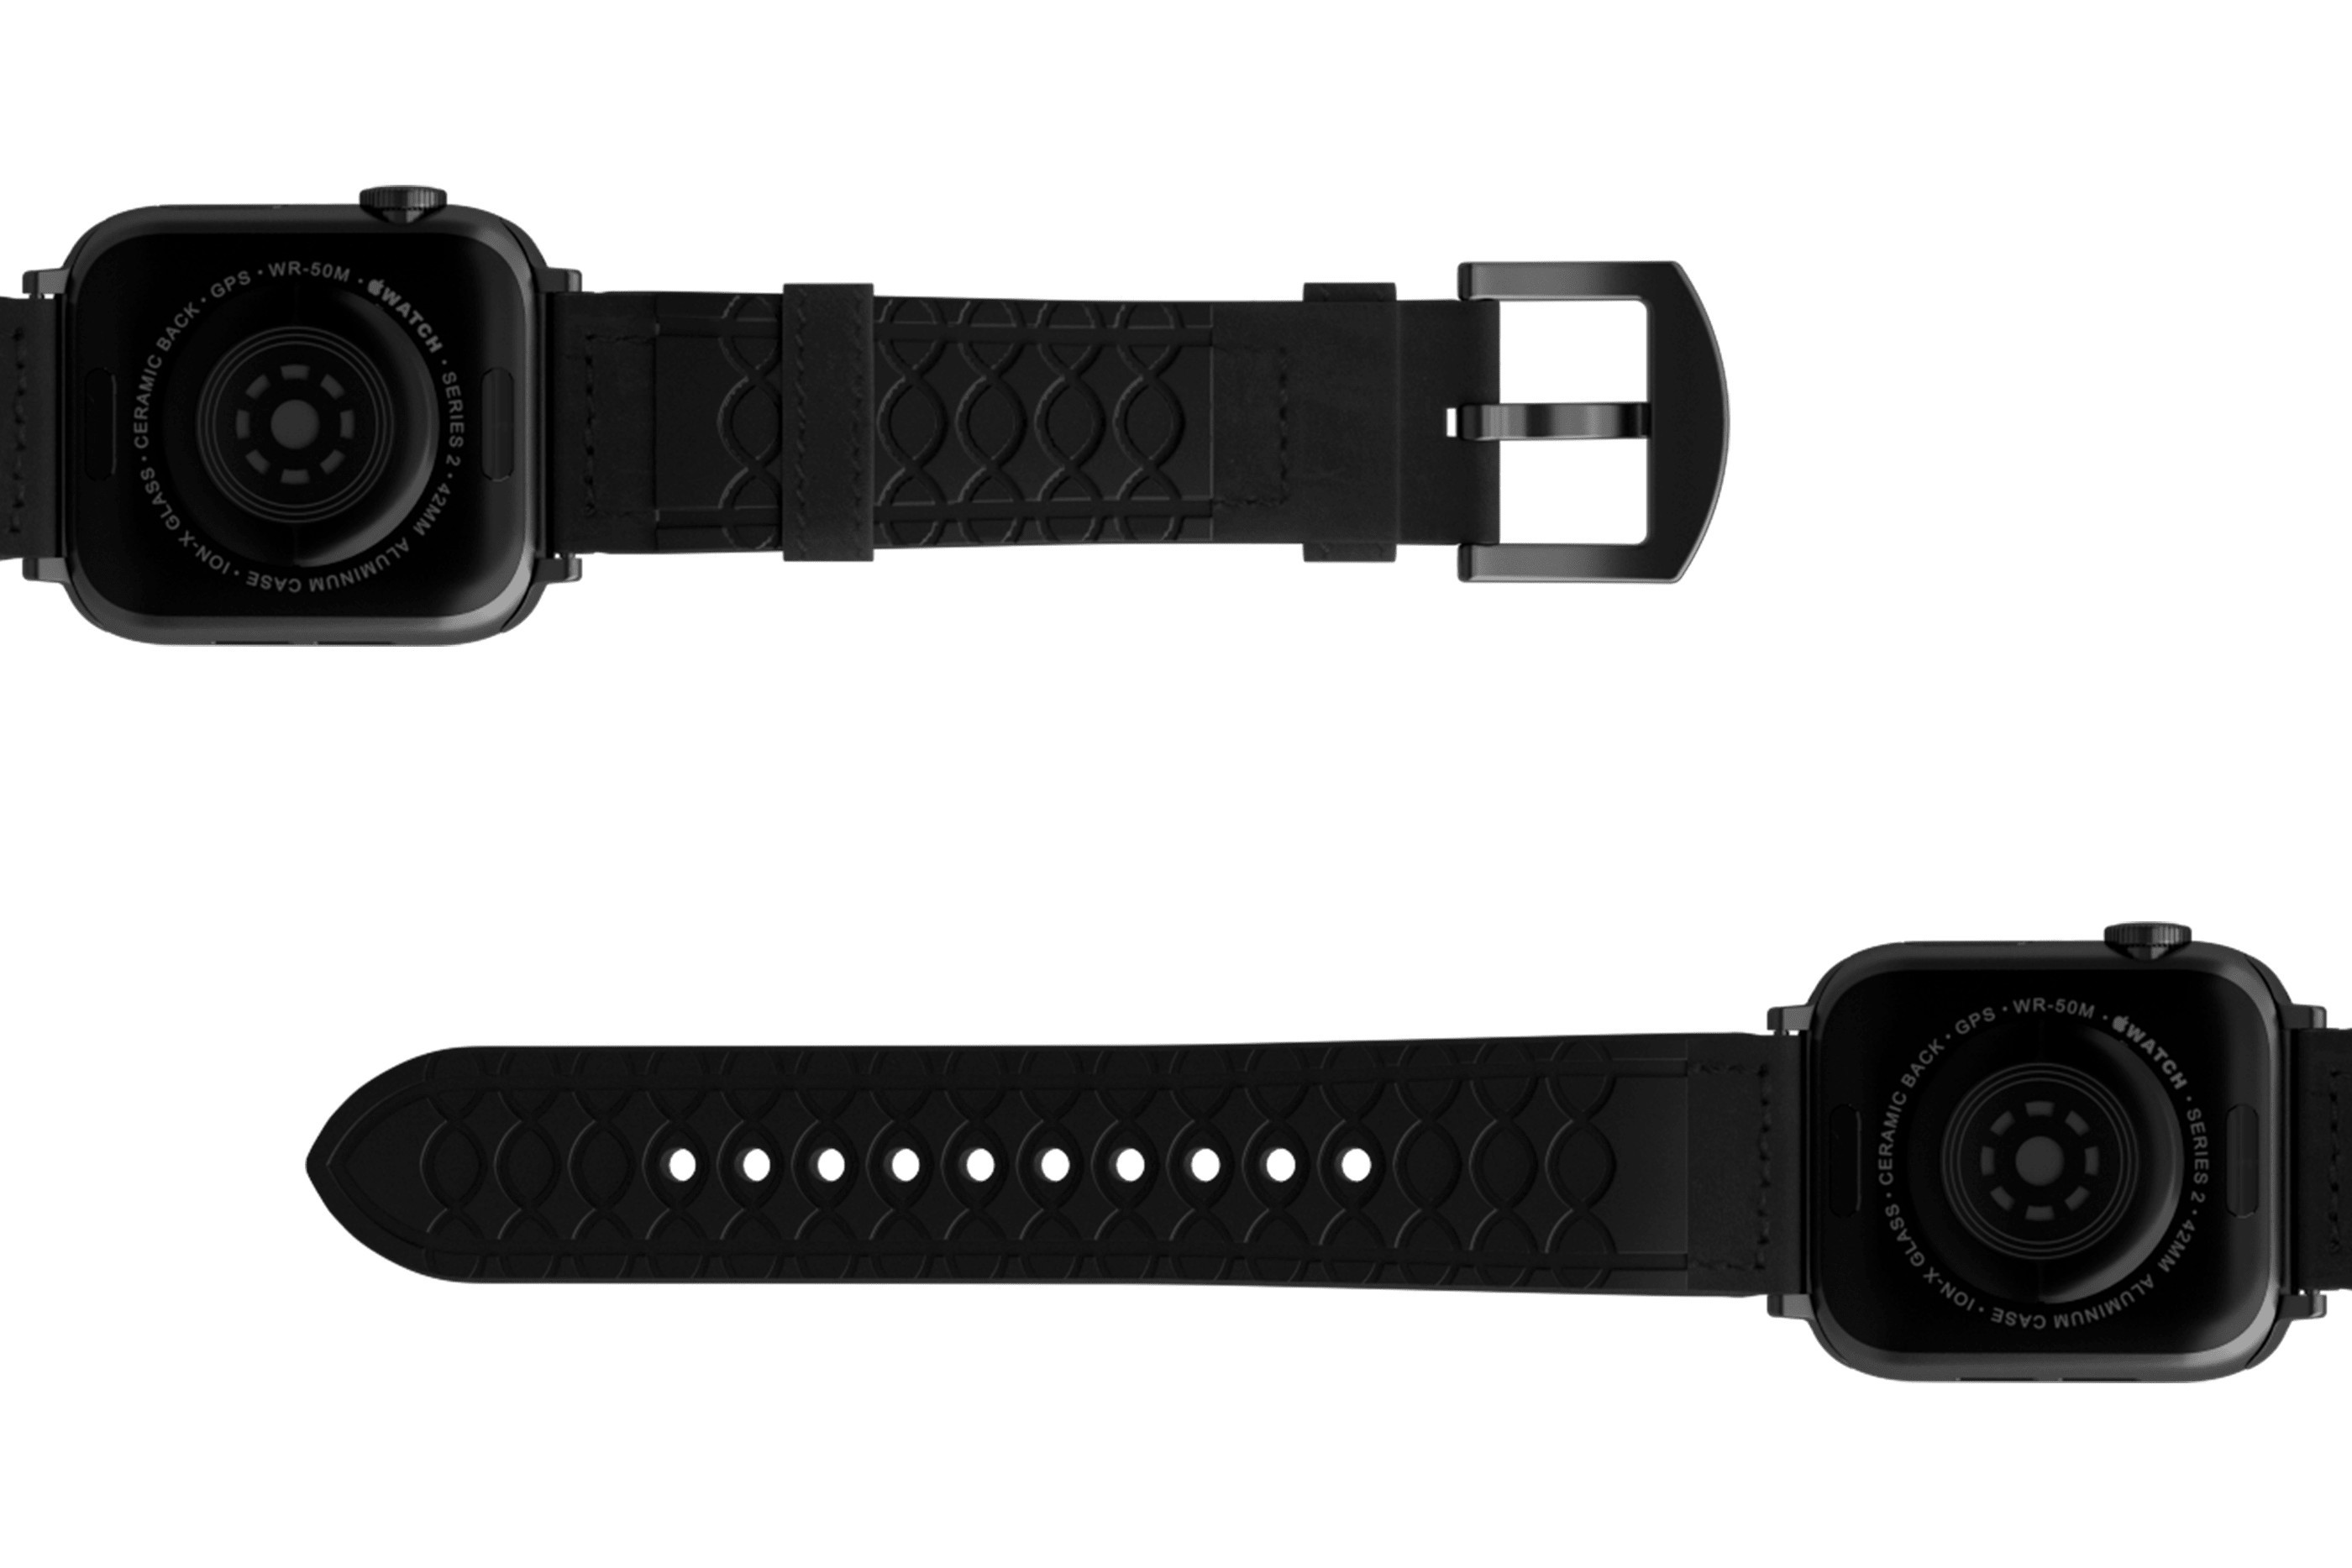 Vulcan Obsidian Black Leather Apple   watch band with gray hardware viewed bottom up